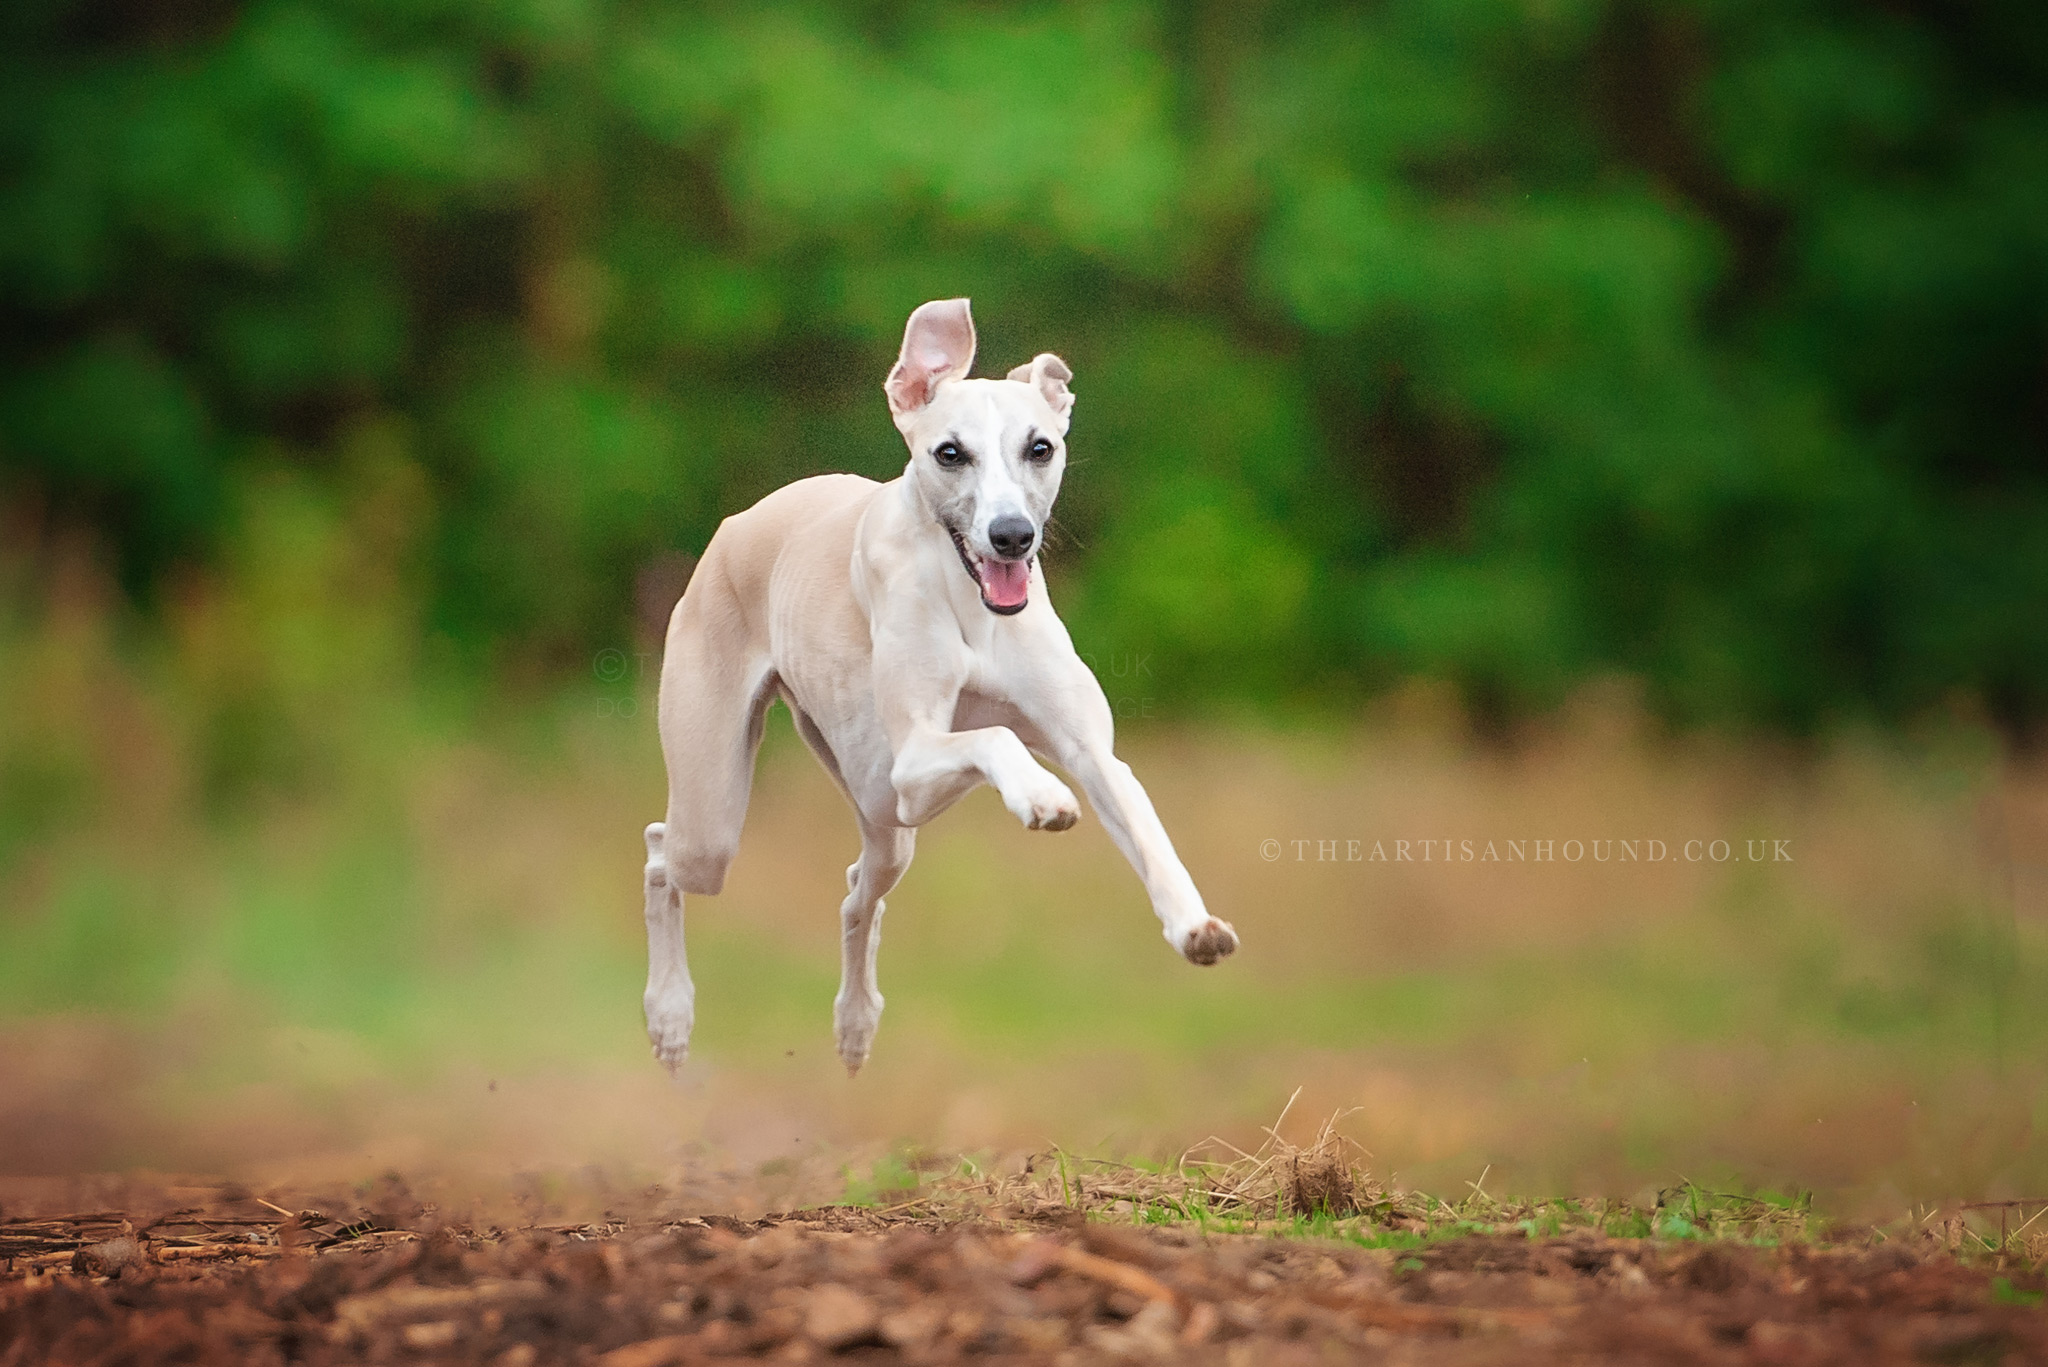 Whippet running towards camera